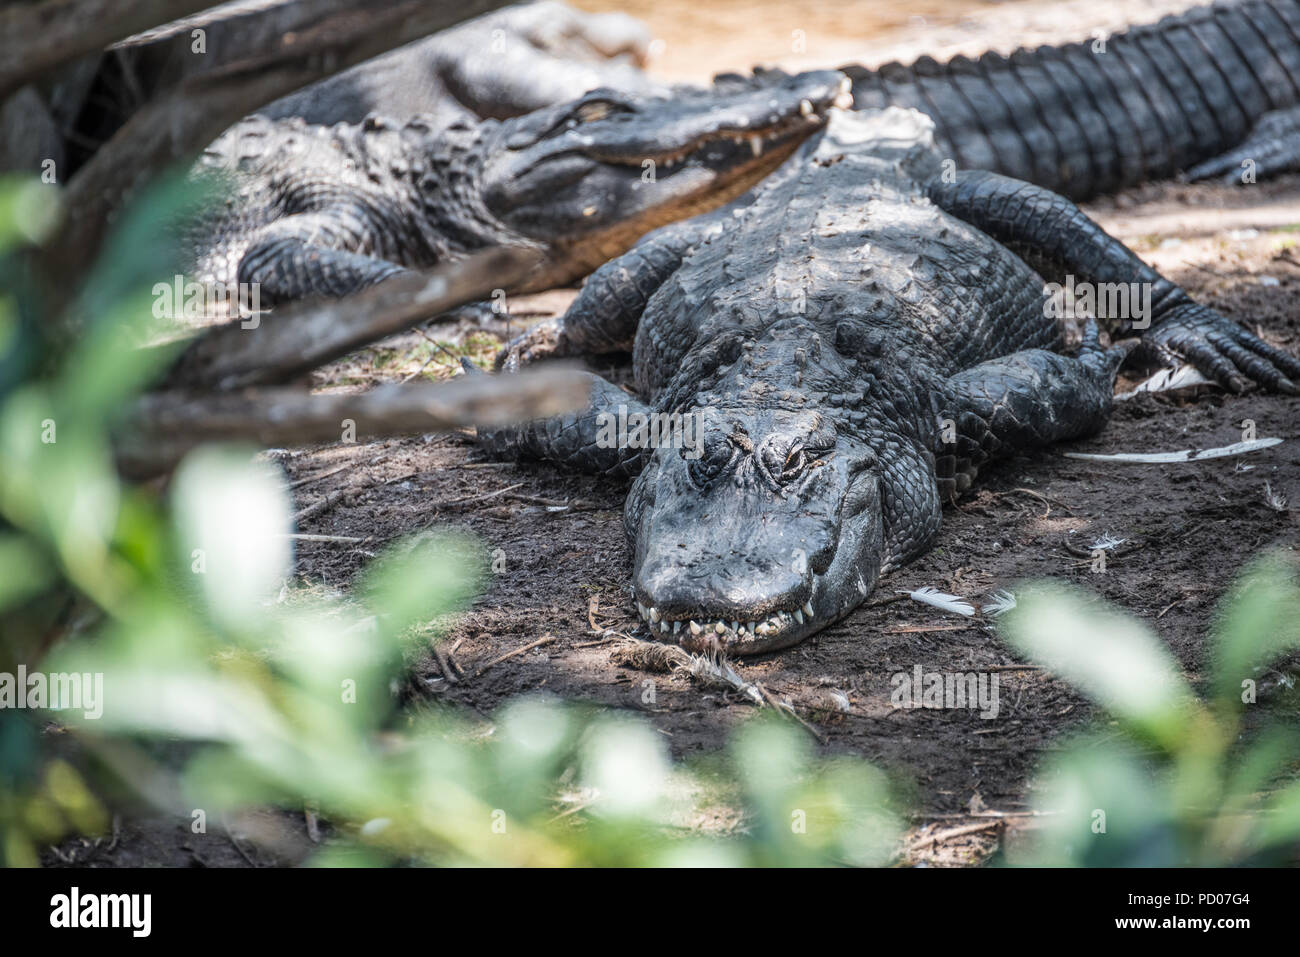 Resting alligators at St. Augustine Alligator Farm Zoological Park in St. Augustine, Florida. (USA) - Stock Image